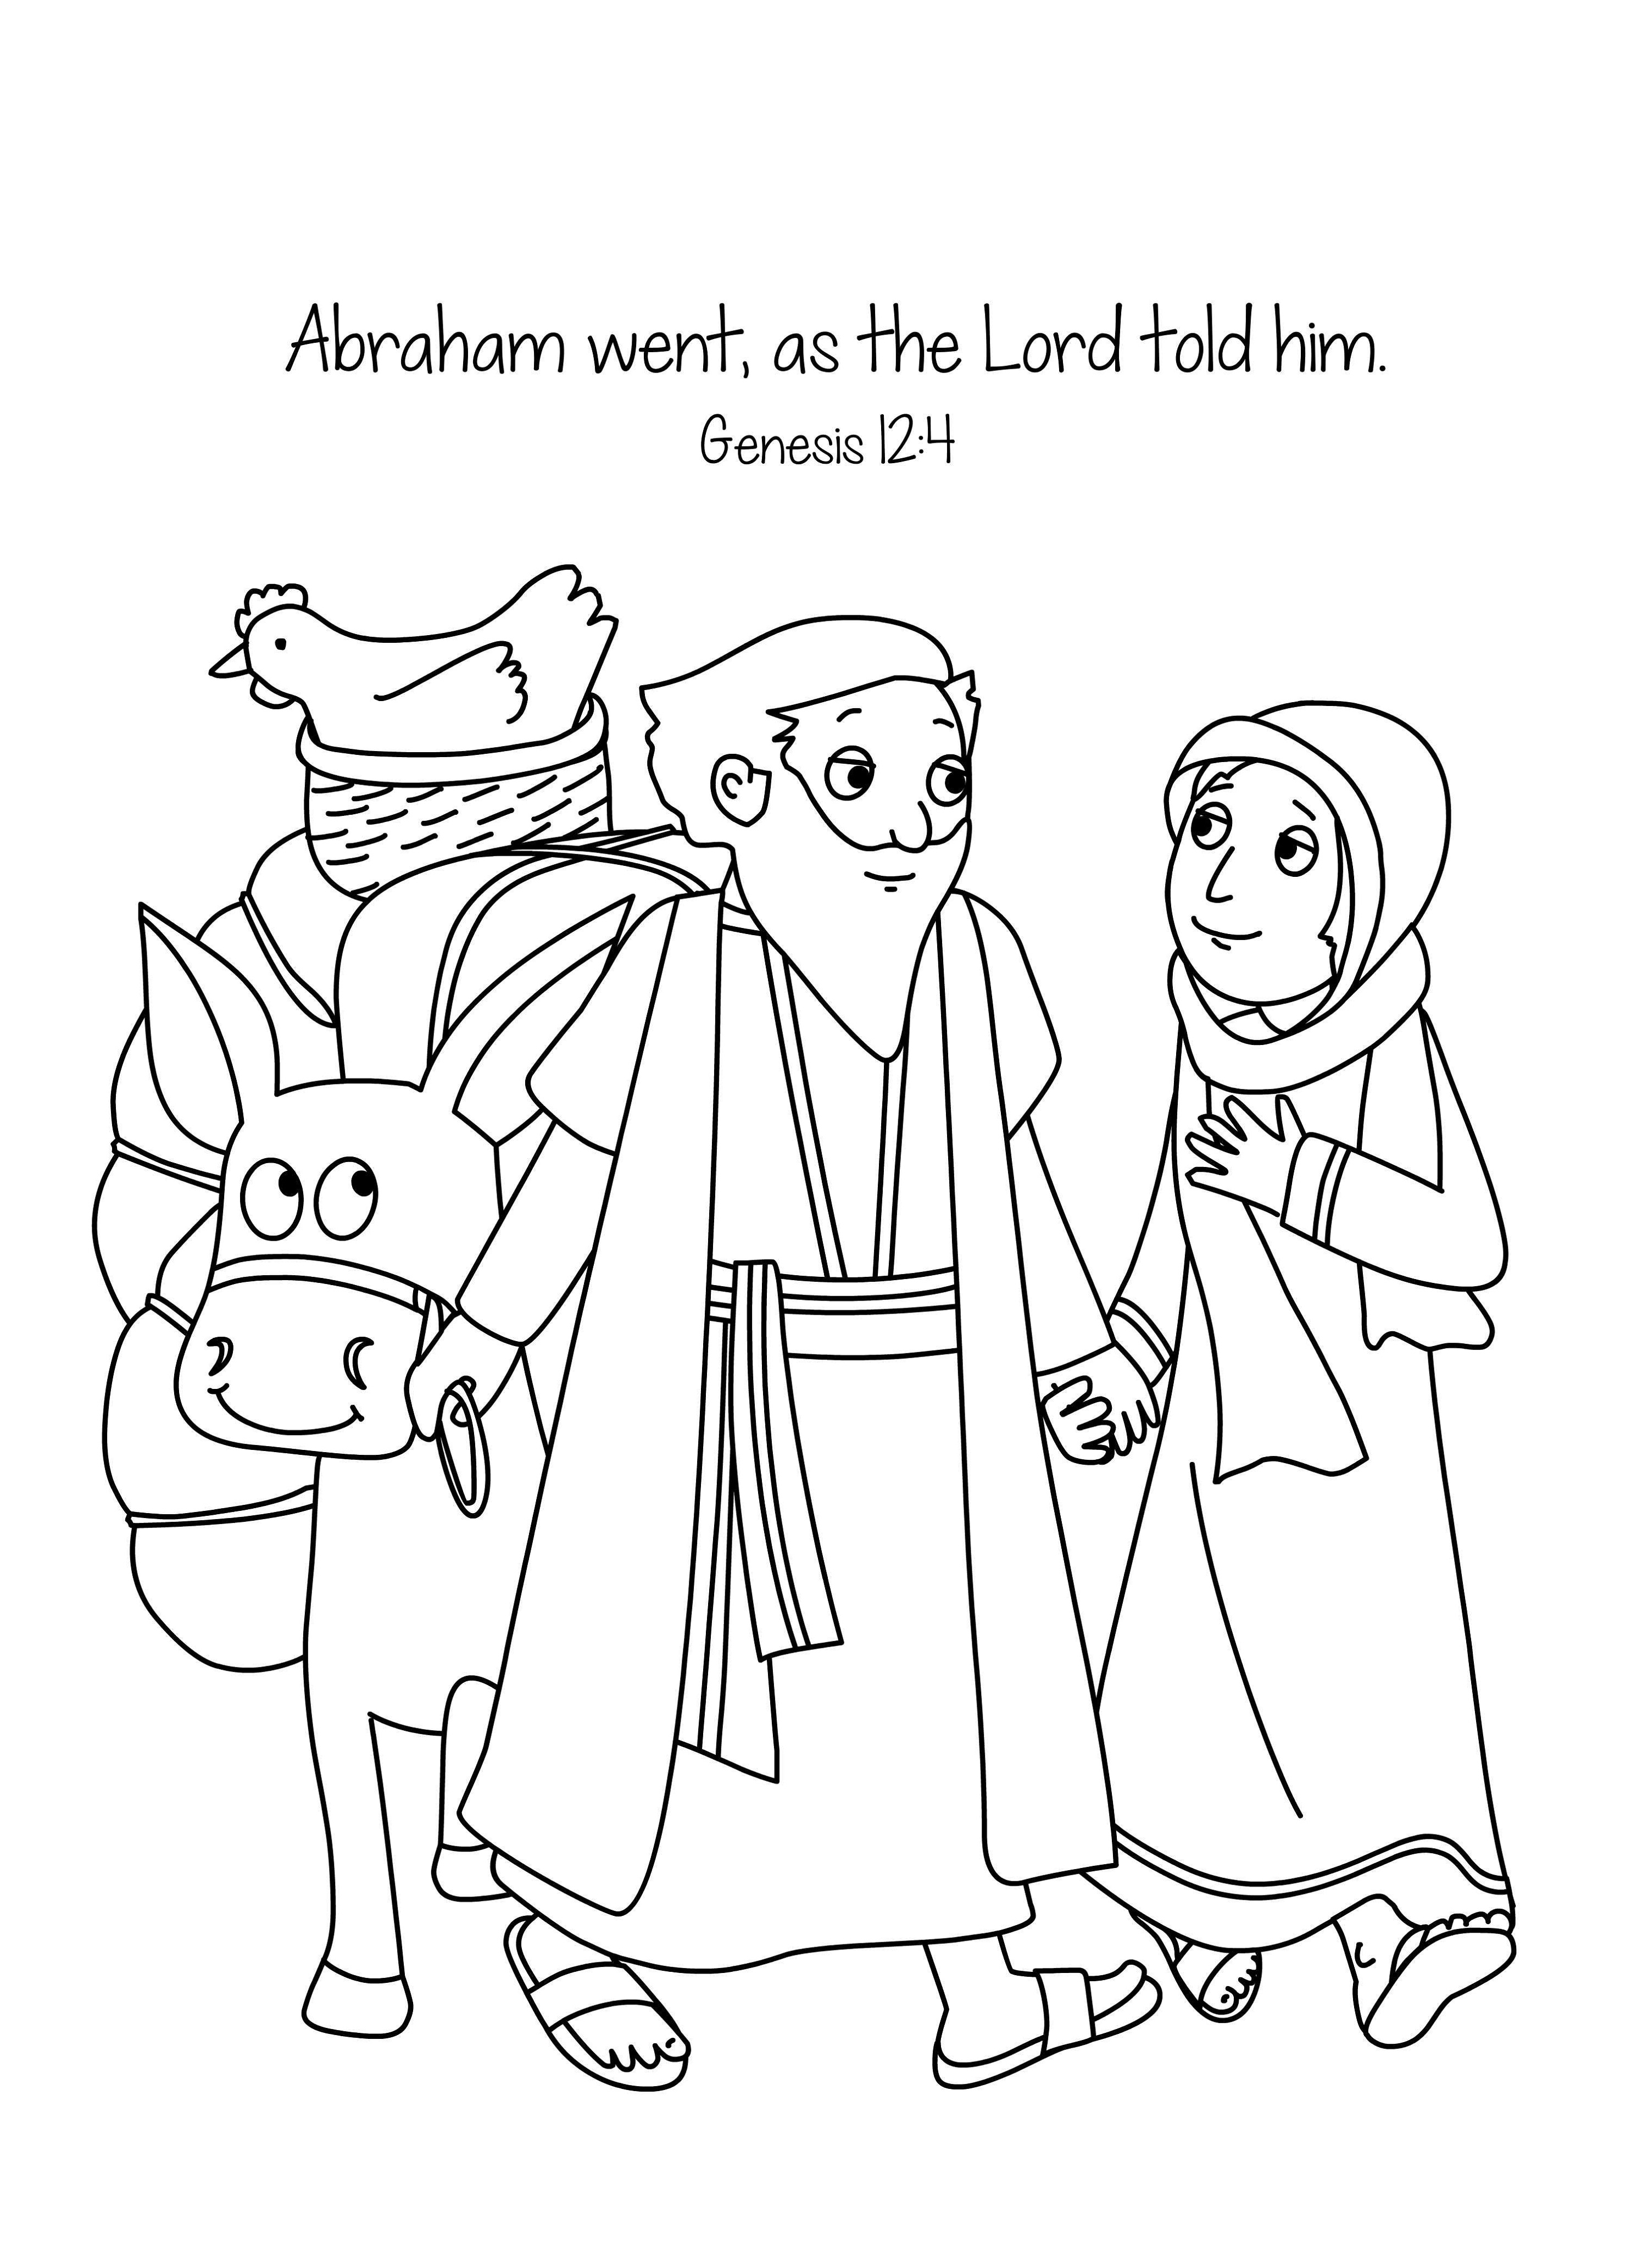 abraham and sarah coloring pages abraham and sarah coloring page timeless miraclecom pages coloring abraham and sarah